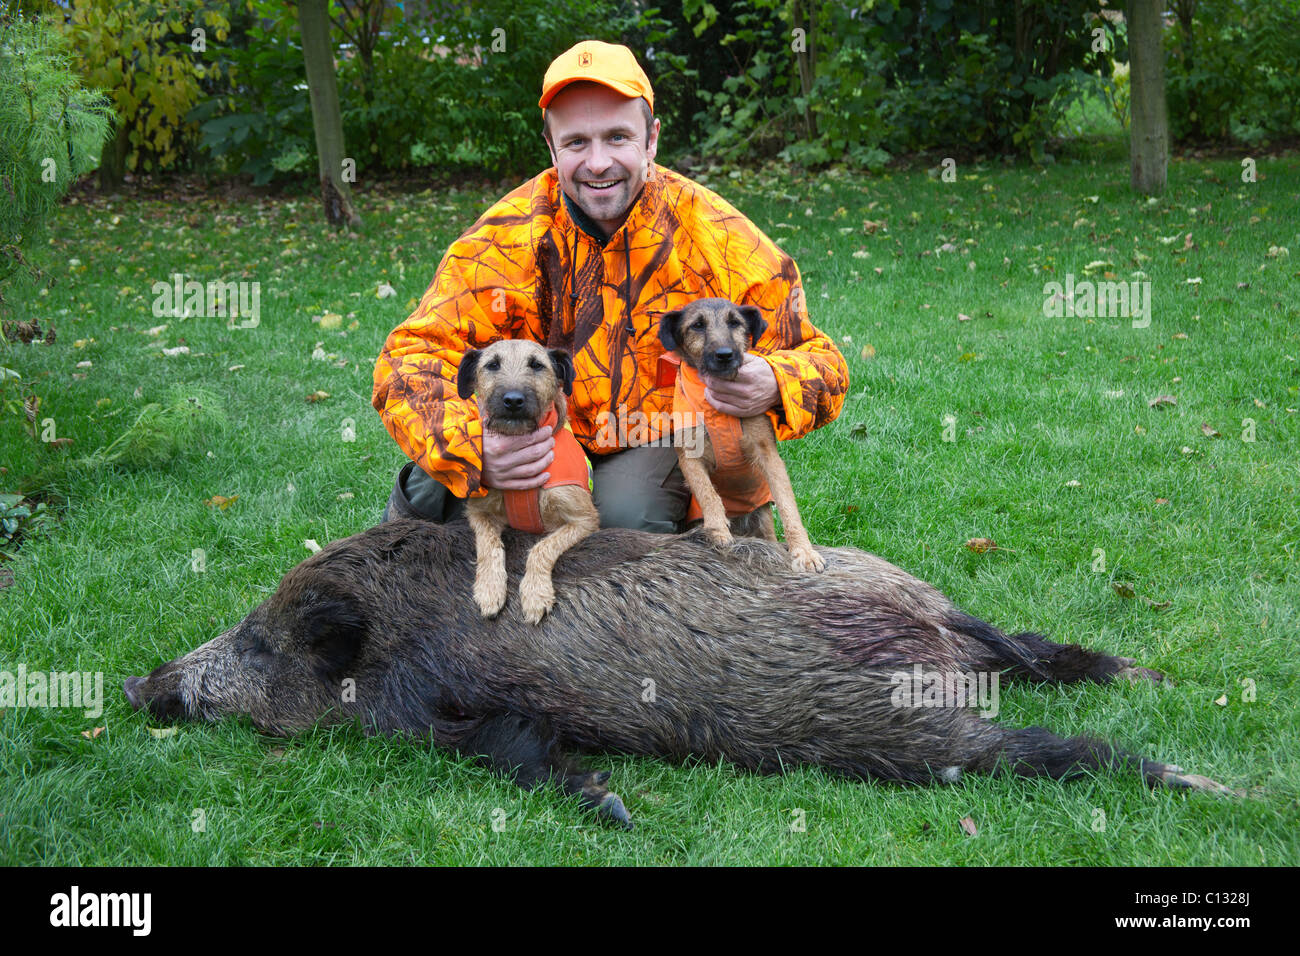 Hunter, with two Westpahlen terriers and wild boar, Lower Saxony, Germany - Stock Image